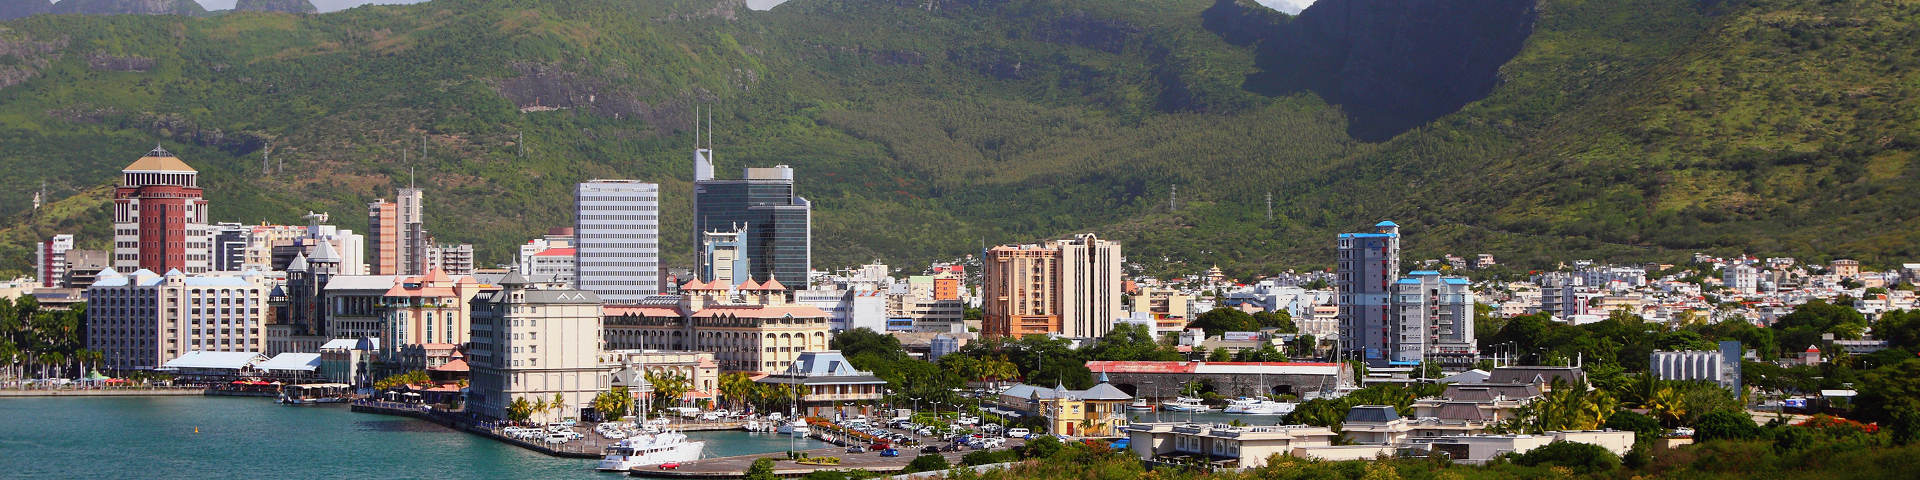 Port louis hero banner